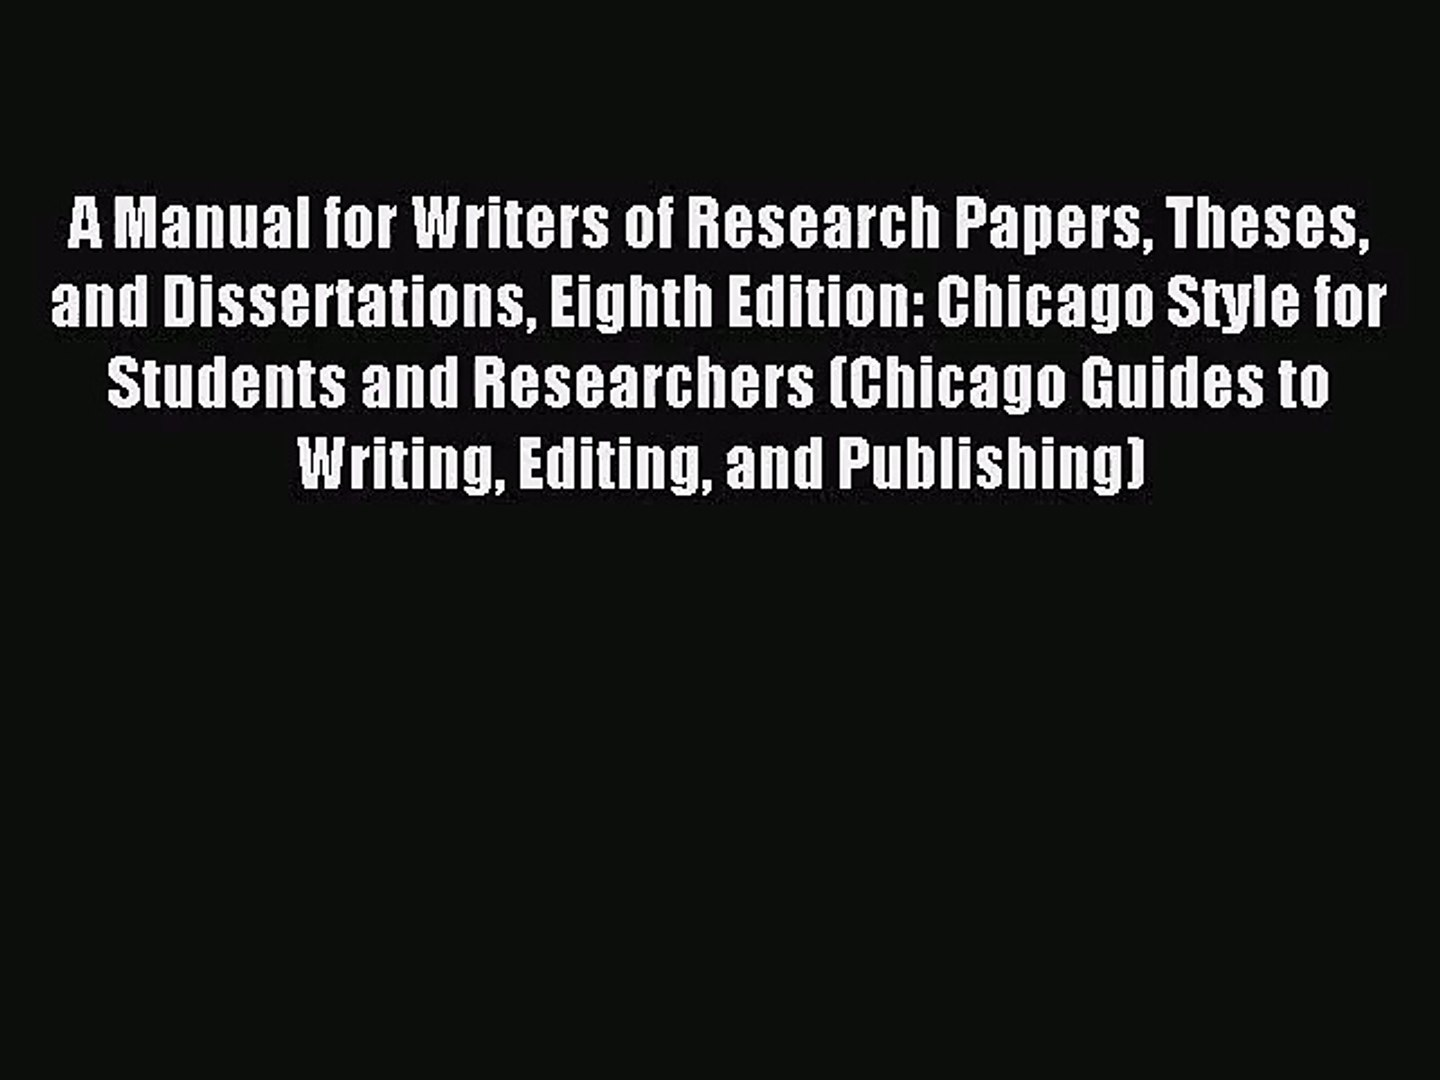 014 X1080 Xeo Manual For Writers Of Researchs Theses And Dissertations Fearsome A Research Papers Ed 8 Full